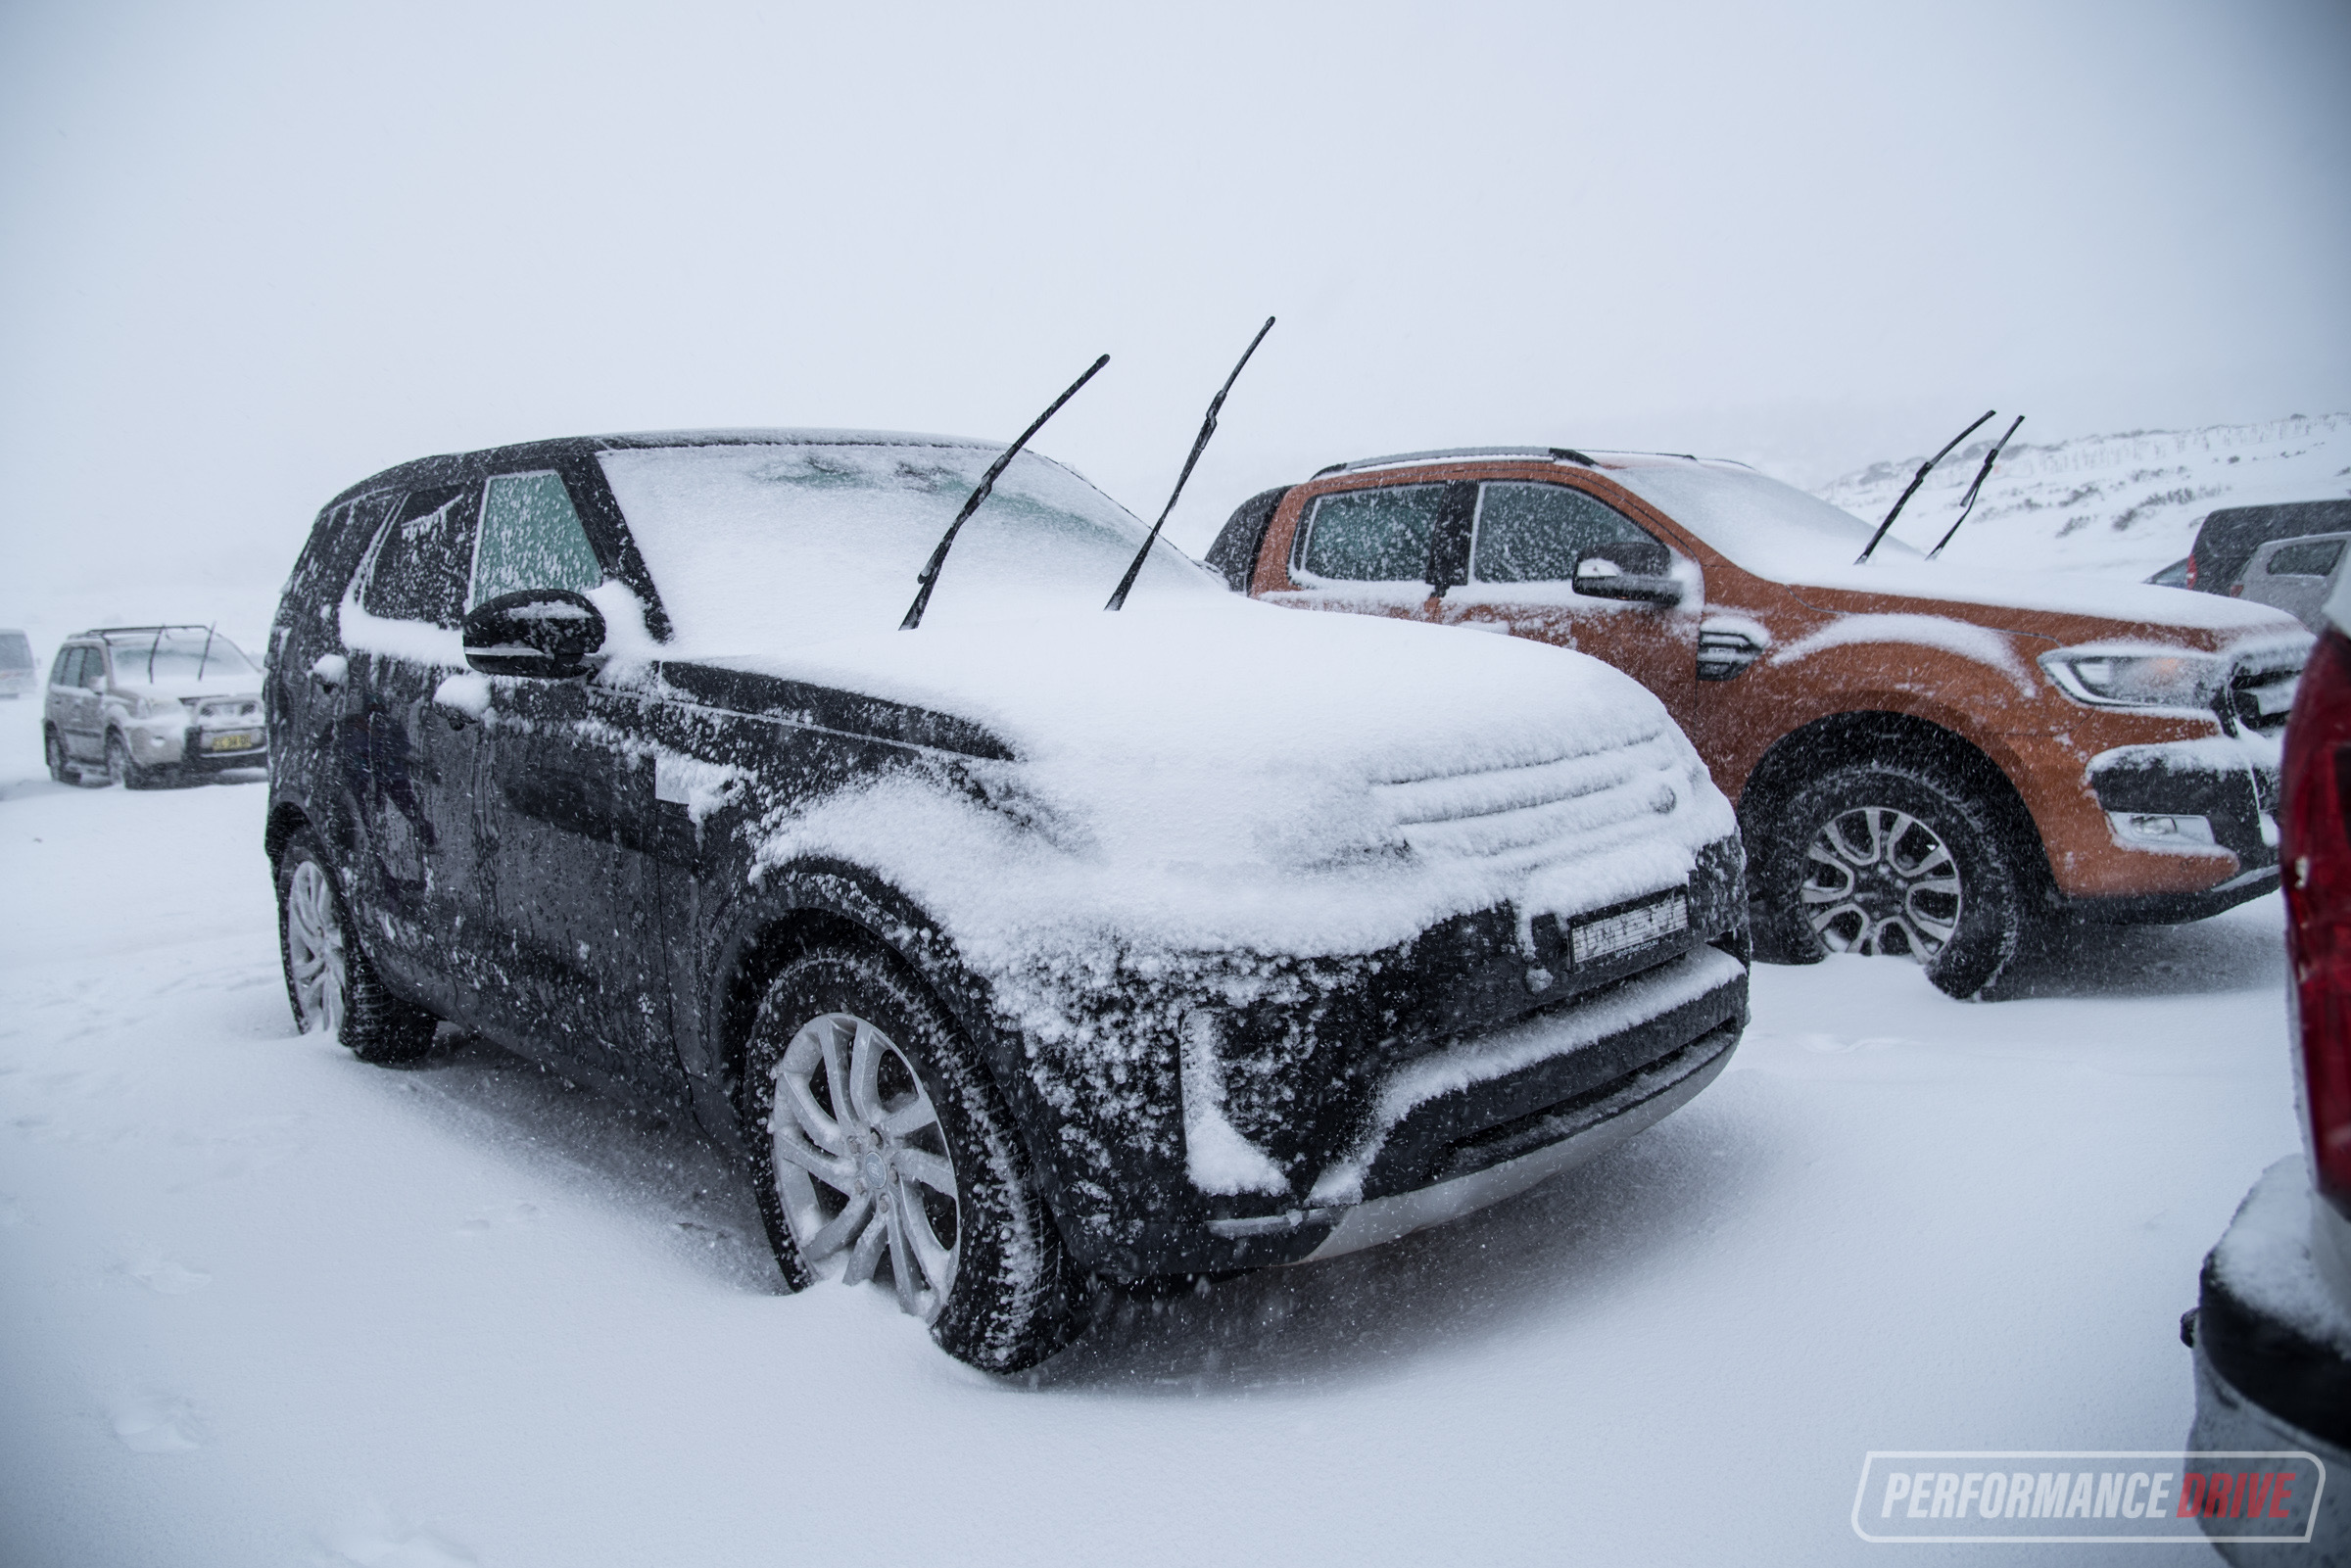 http://performancedrive.com.au/wp-content/uploads/2017/09/2017-Land-Rover-Discovery-HSE-Sd4-snow.jpg